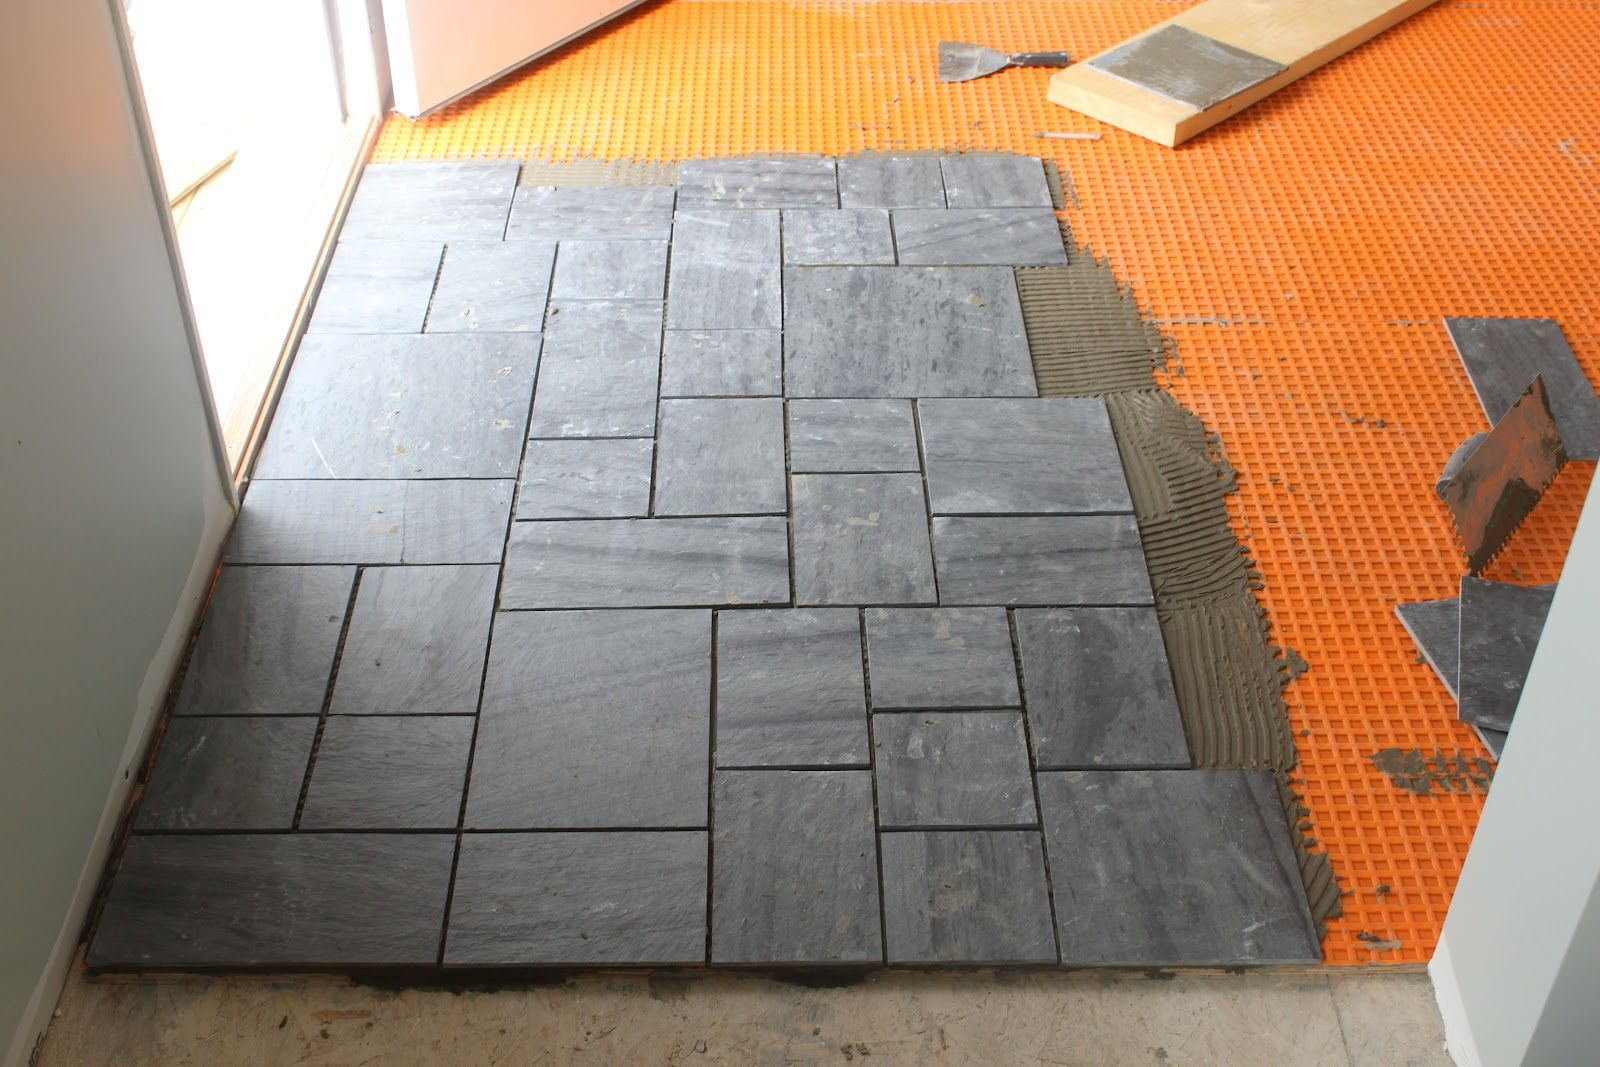 tile flooring near setting floor house slate floors door pool progress